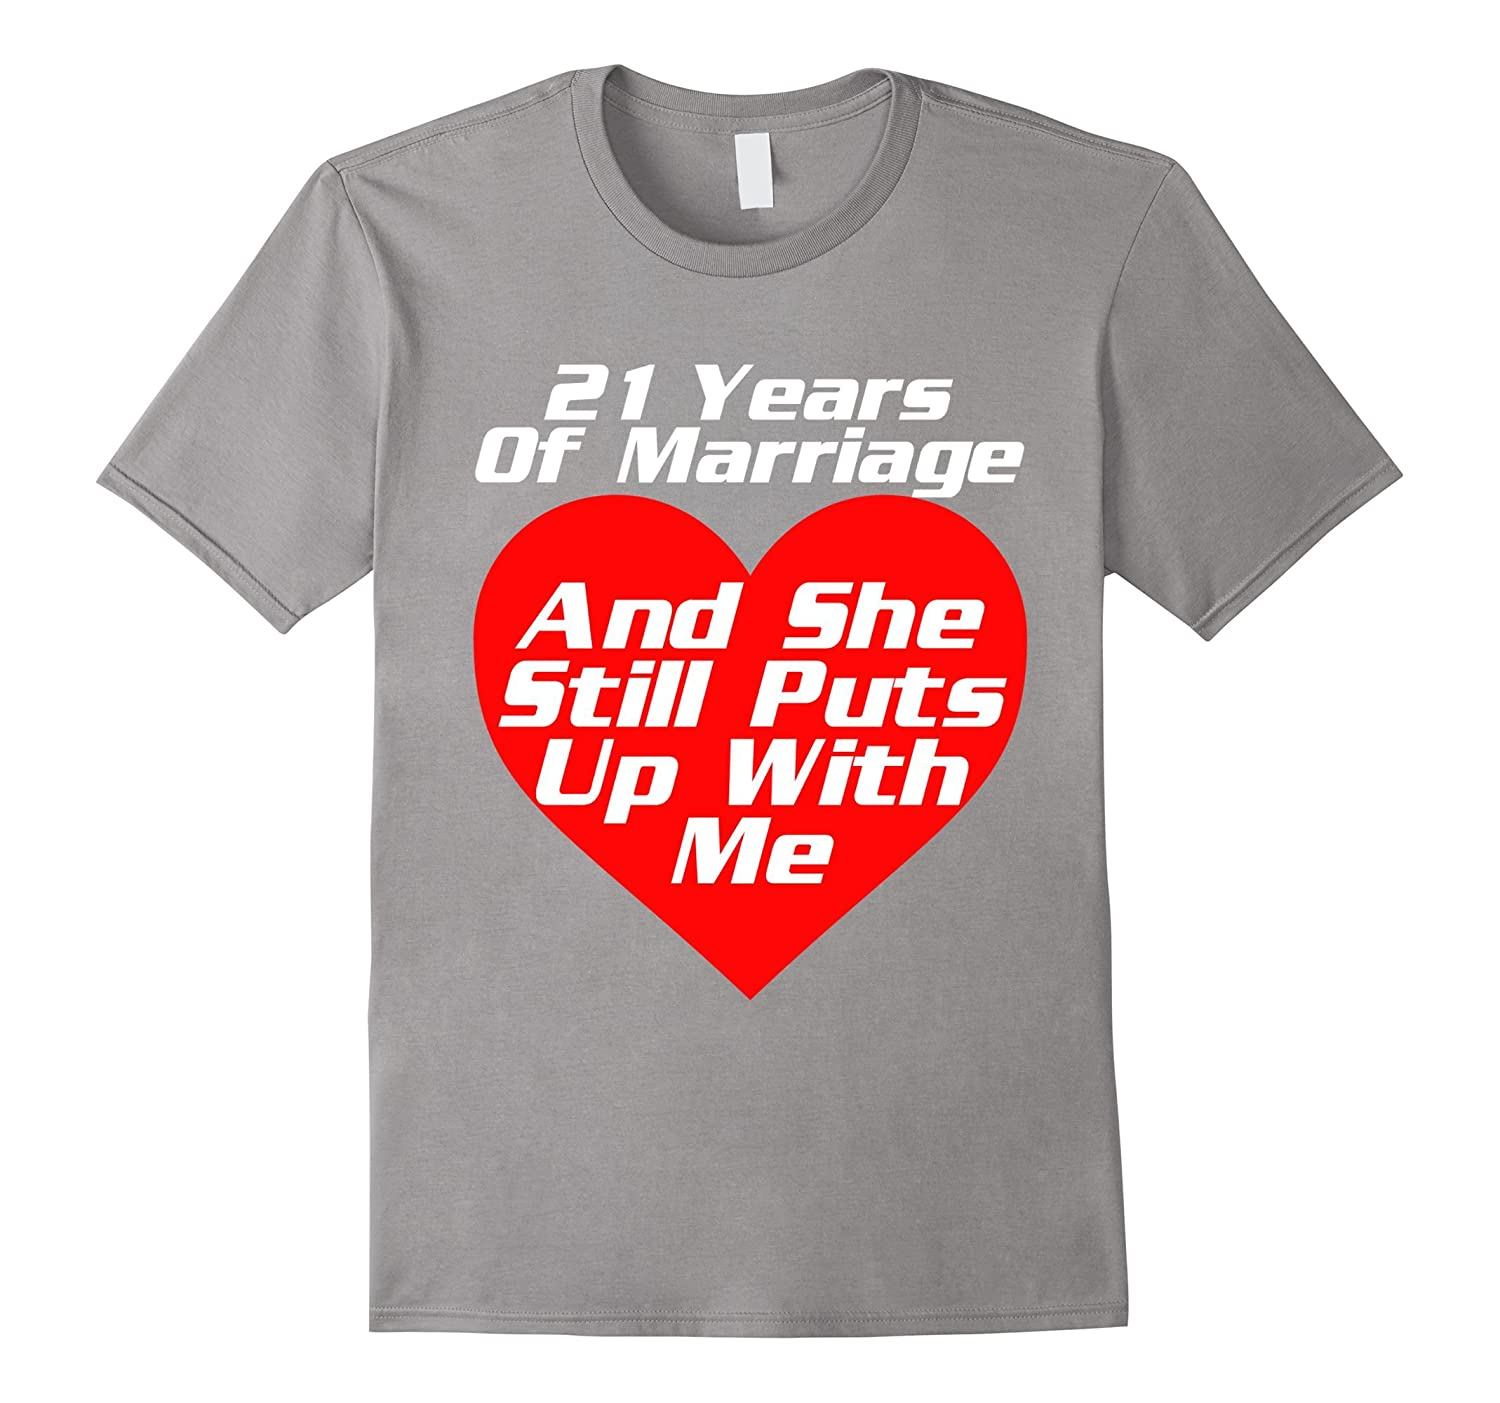 21st Wedding Anniversary Gift Ideas: 21 Years 21st Wedding Anniversary Gift Shirt Puts Up With